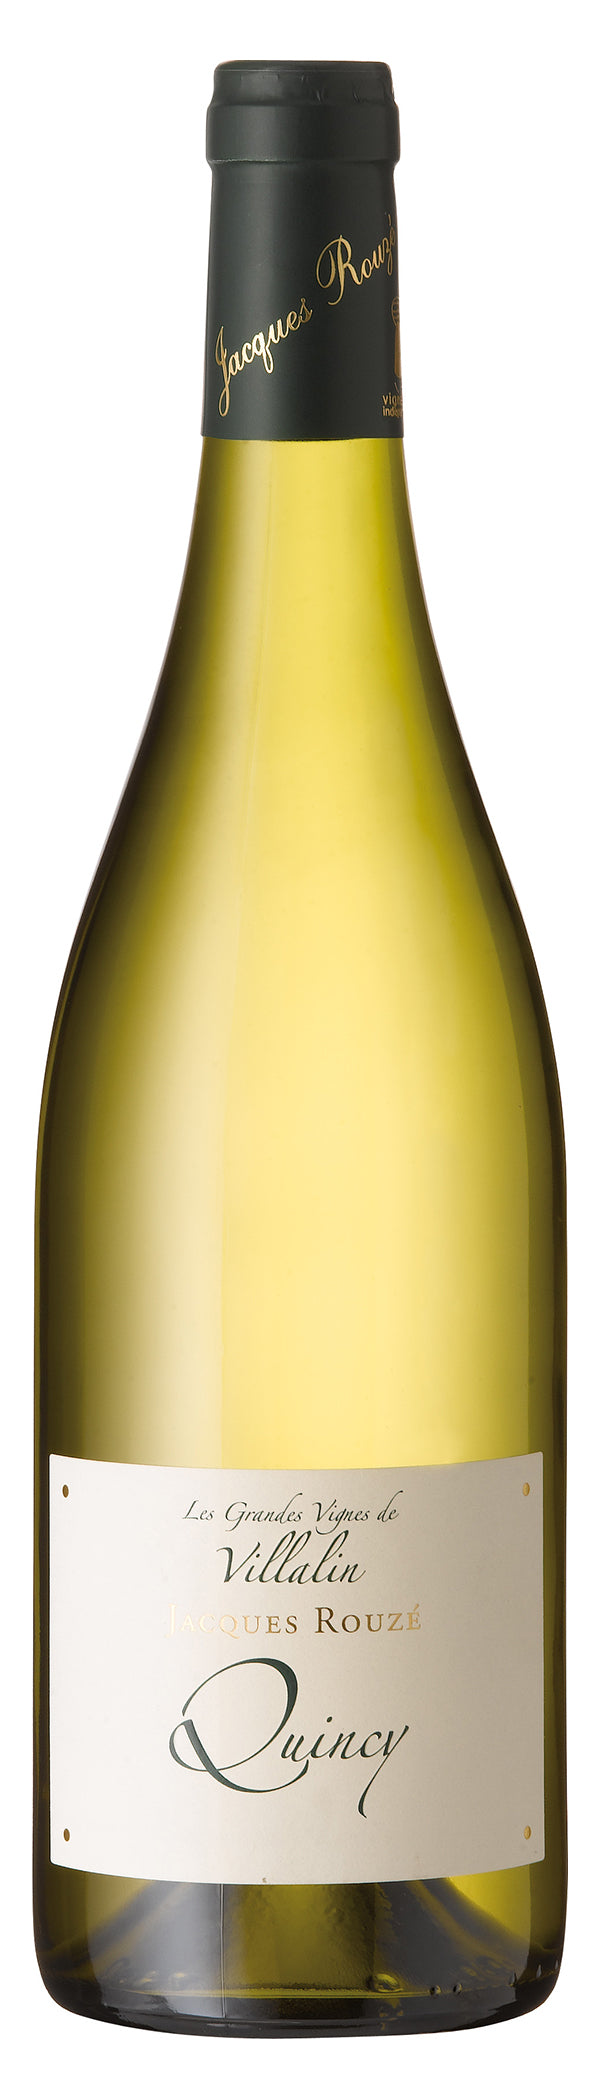 Quincy Villalin, Domaine Jacques Rouzé 2018, 13%